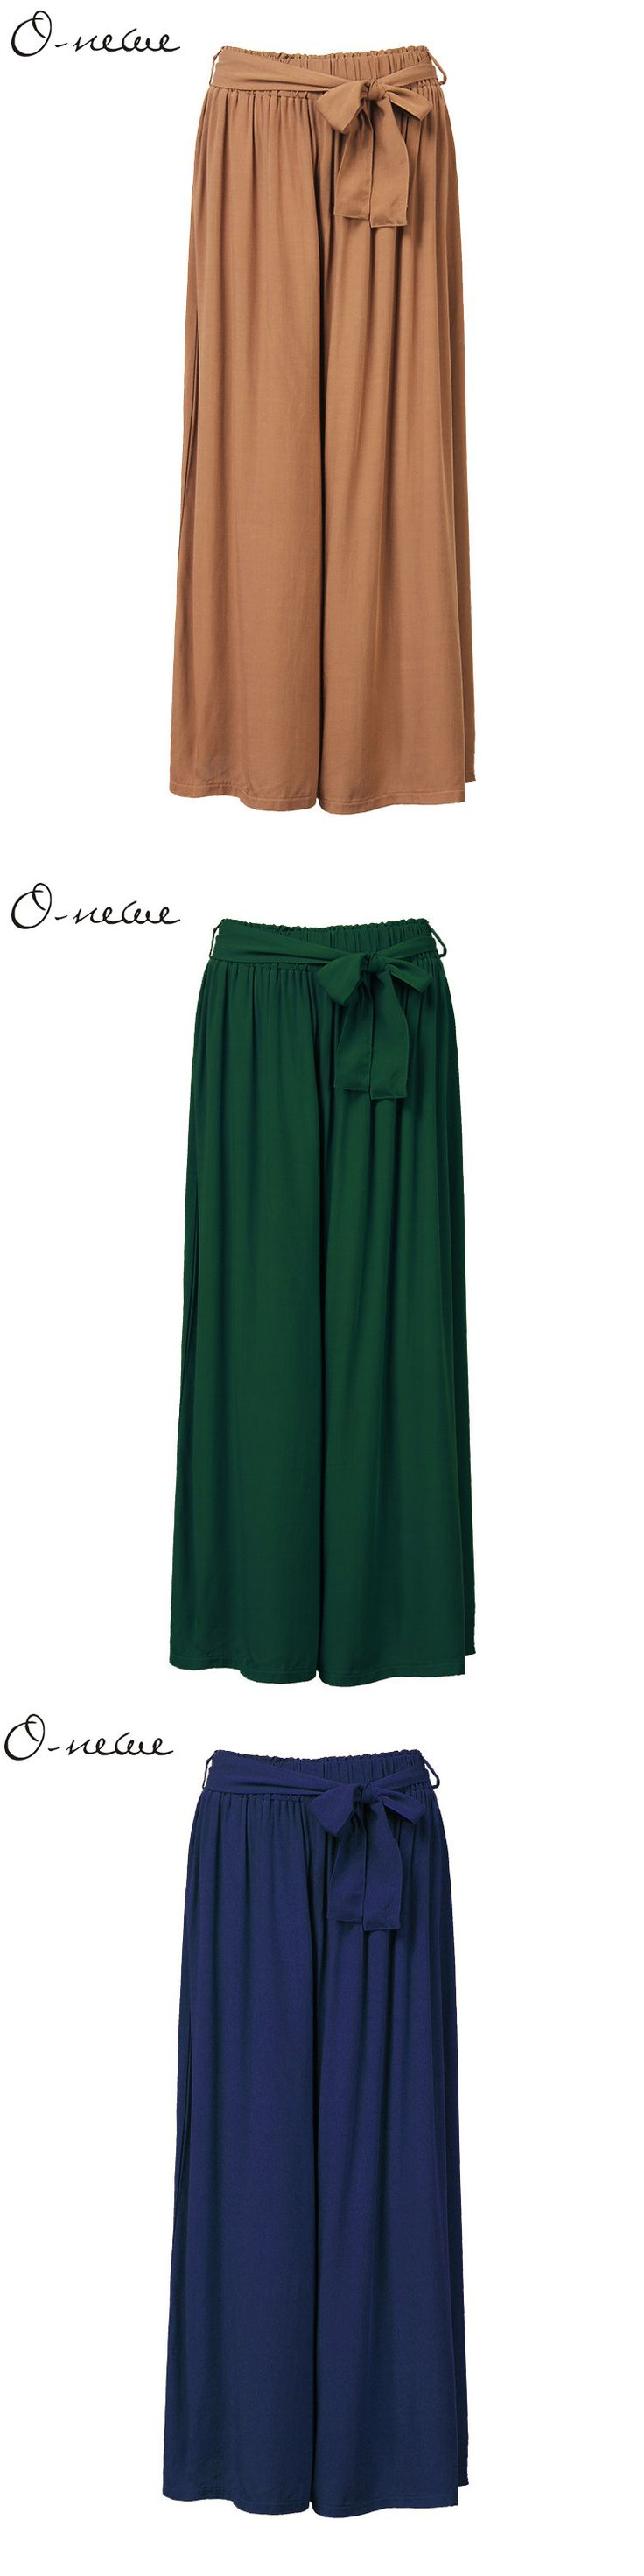 Check out our amazing collection of hijabs at  http://www.lissomecollection.co.uk/